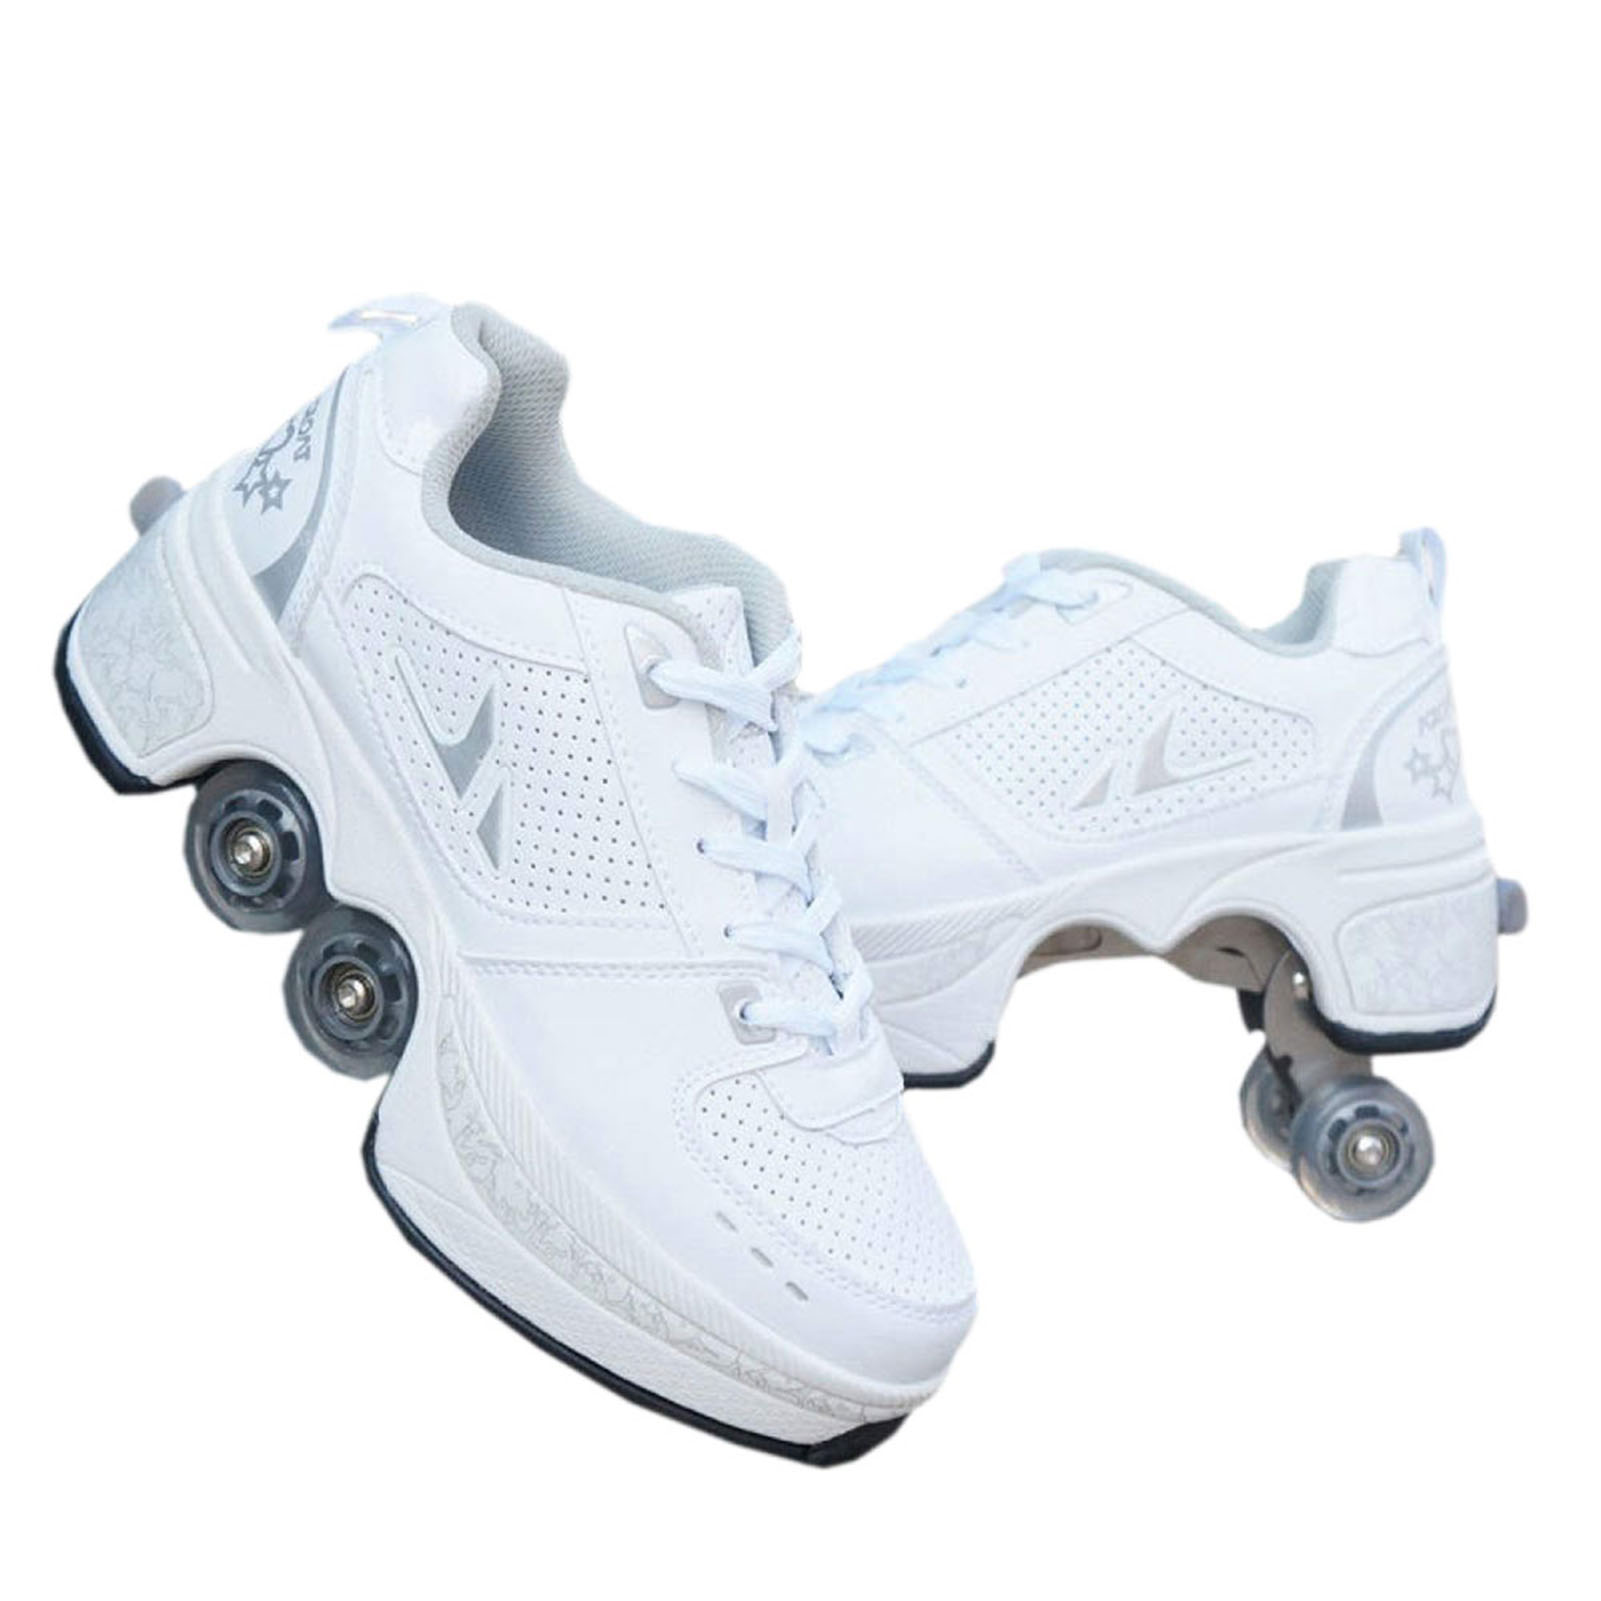 Deformation Roller Shoes Parkour Wheel Shoes 4 Wheels Rounds Of Running Shoes Roller Skates Shoes for Unisex Skating Shoes